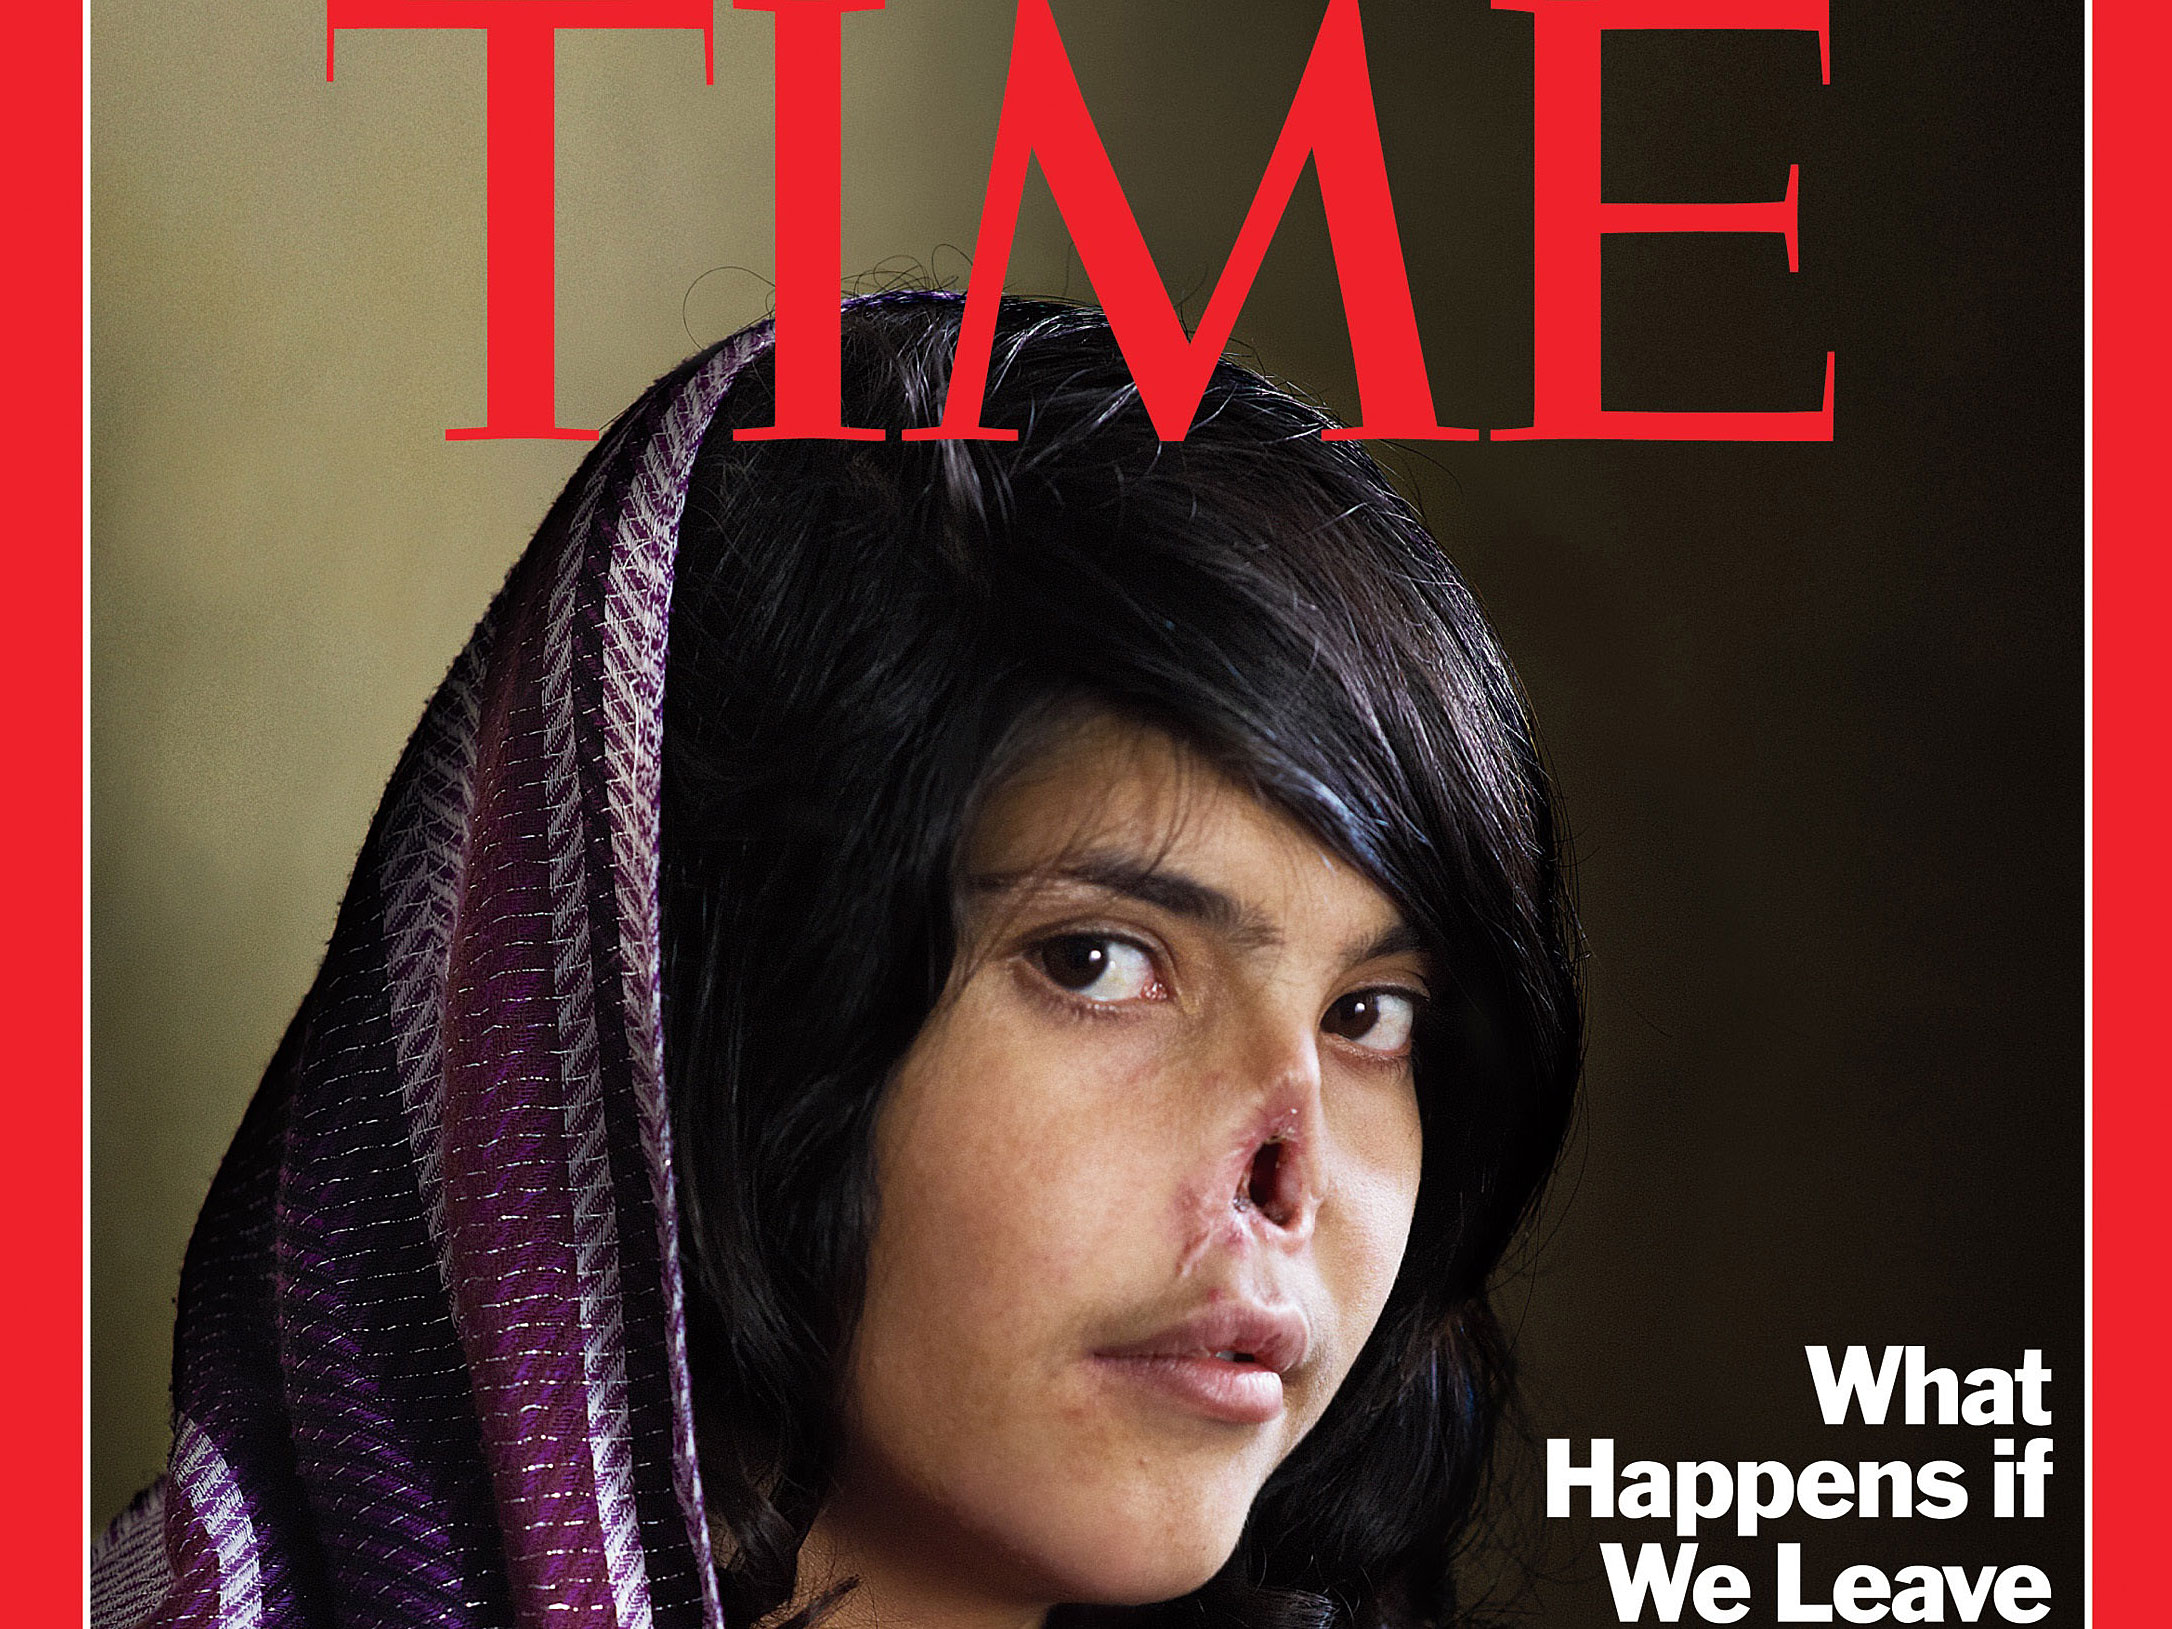 Afghan woman magazine time